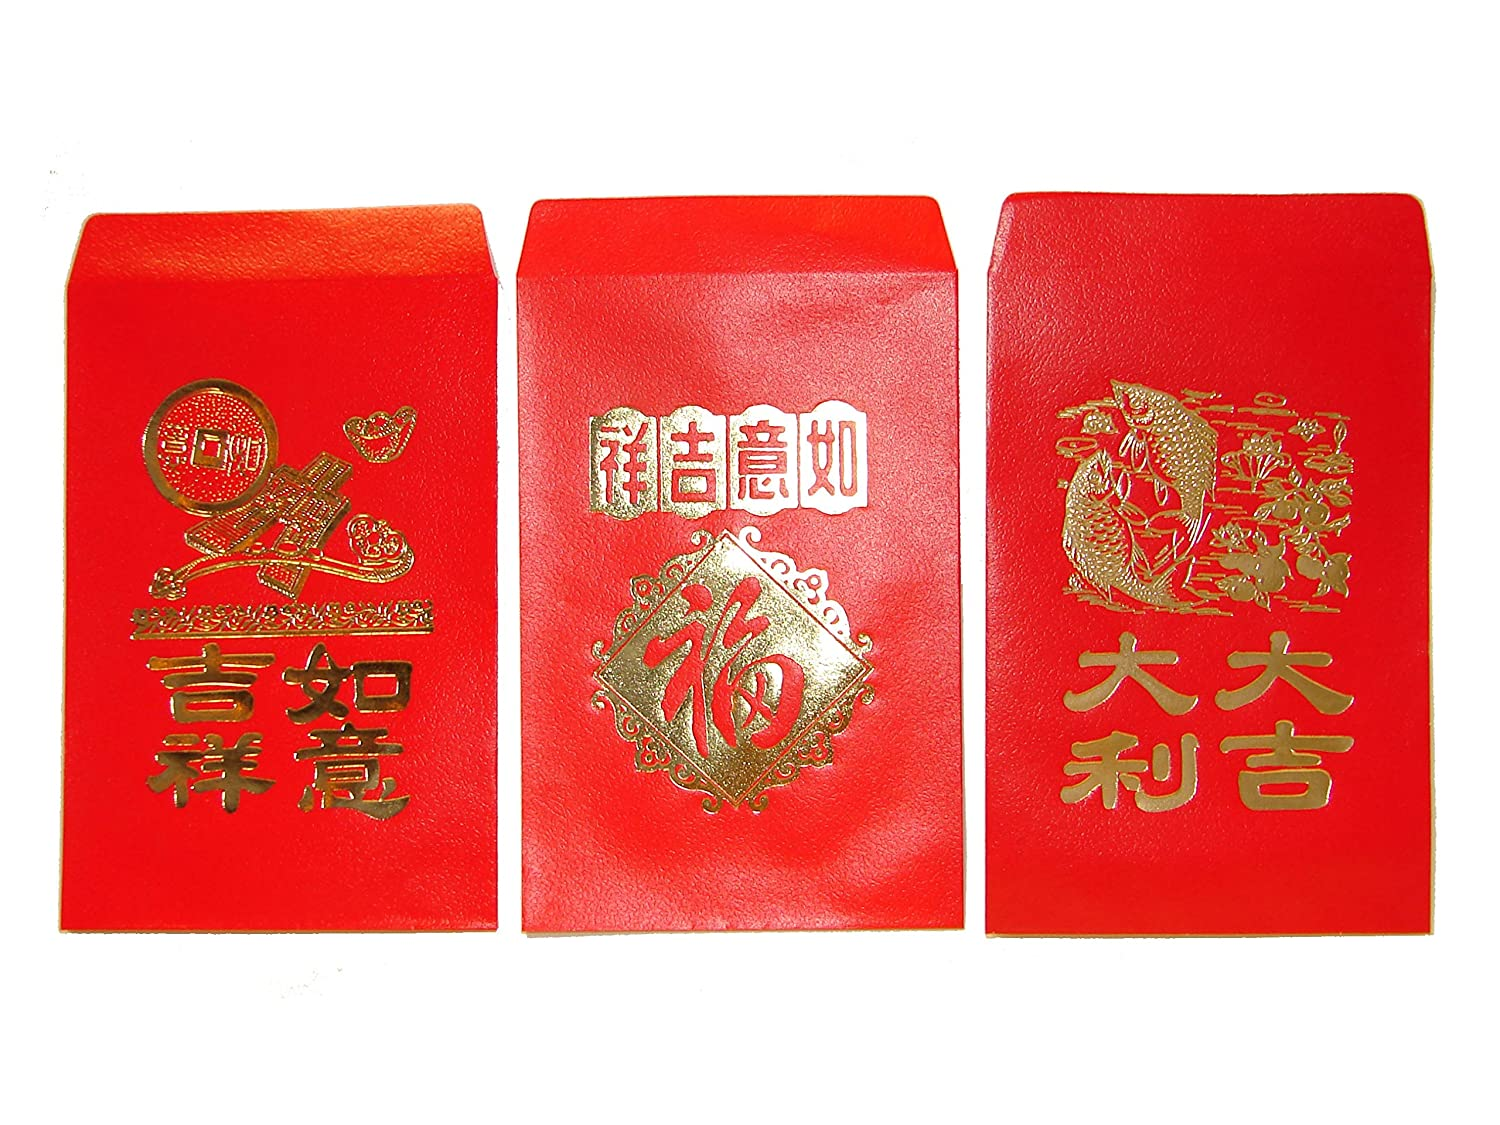 Amazon chinese red envelopes pack of 50 in 3 designs amazon chinese red envelopes pack of 50 in 3 designs chinese funeral envelopes office products negle Image collections